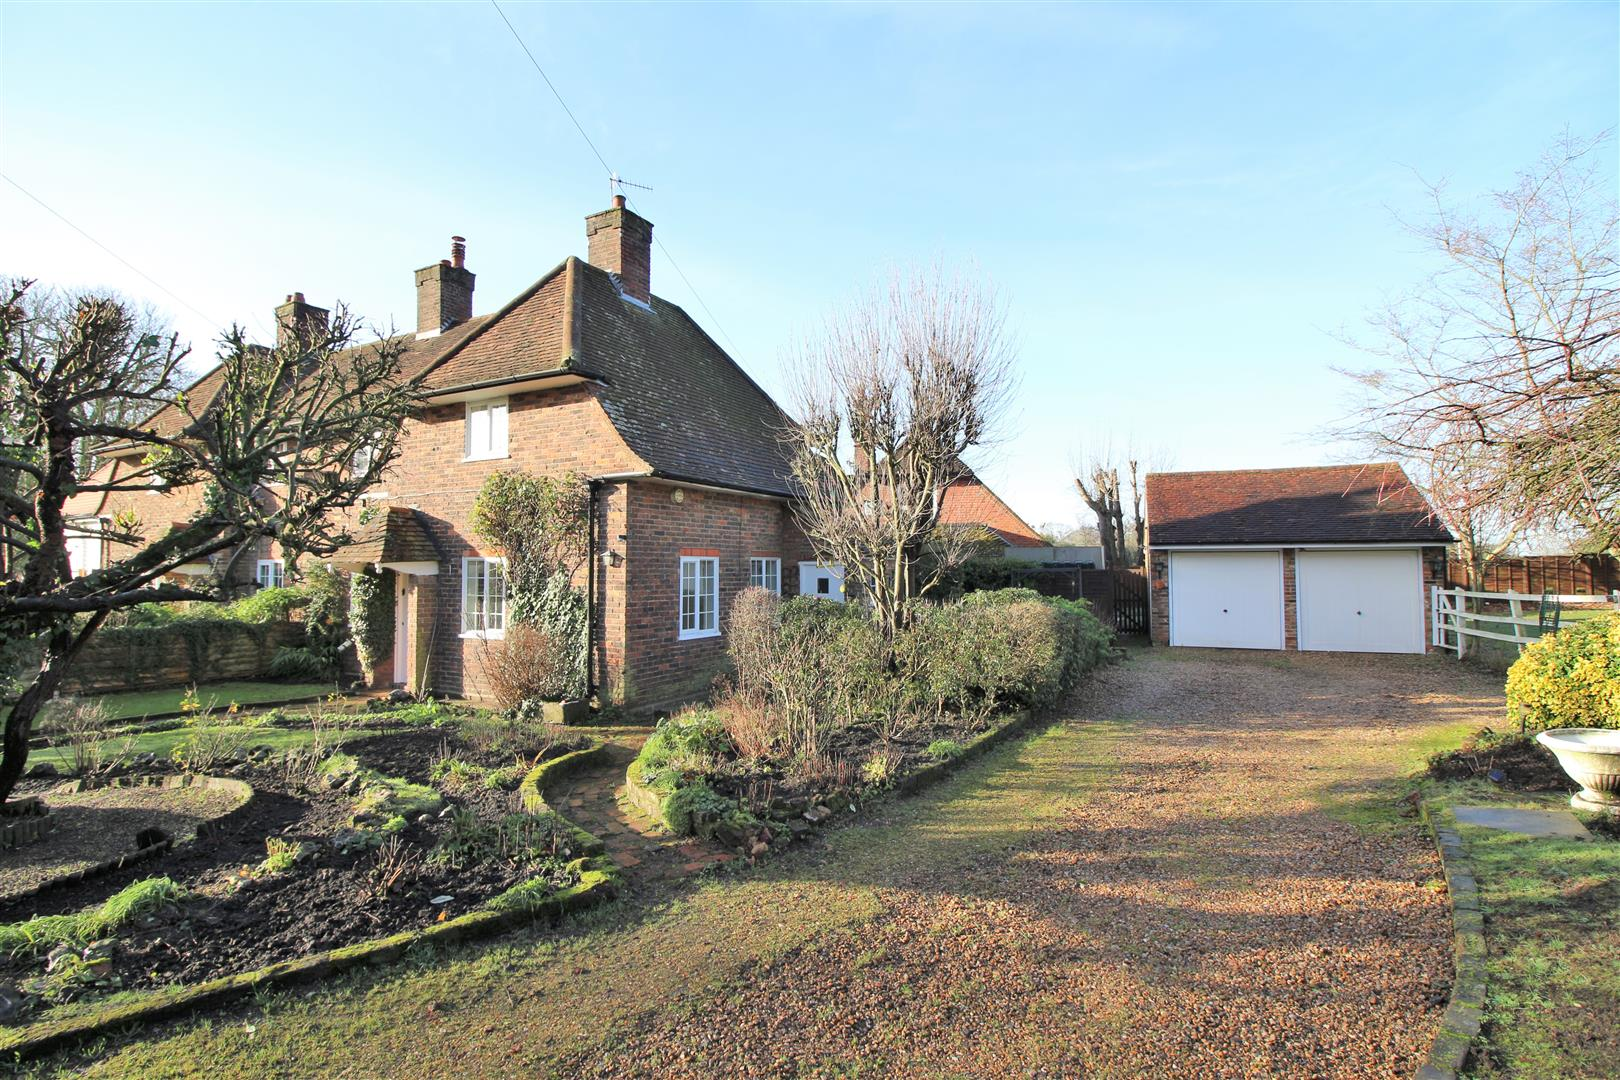 3 bed to rent in Church Lane - (Property Image 12)